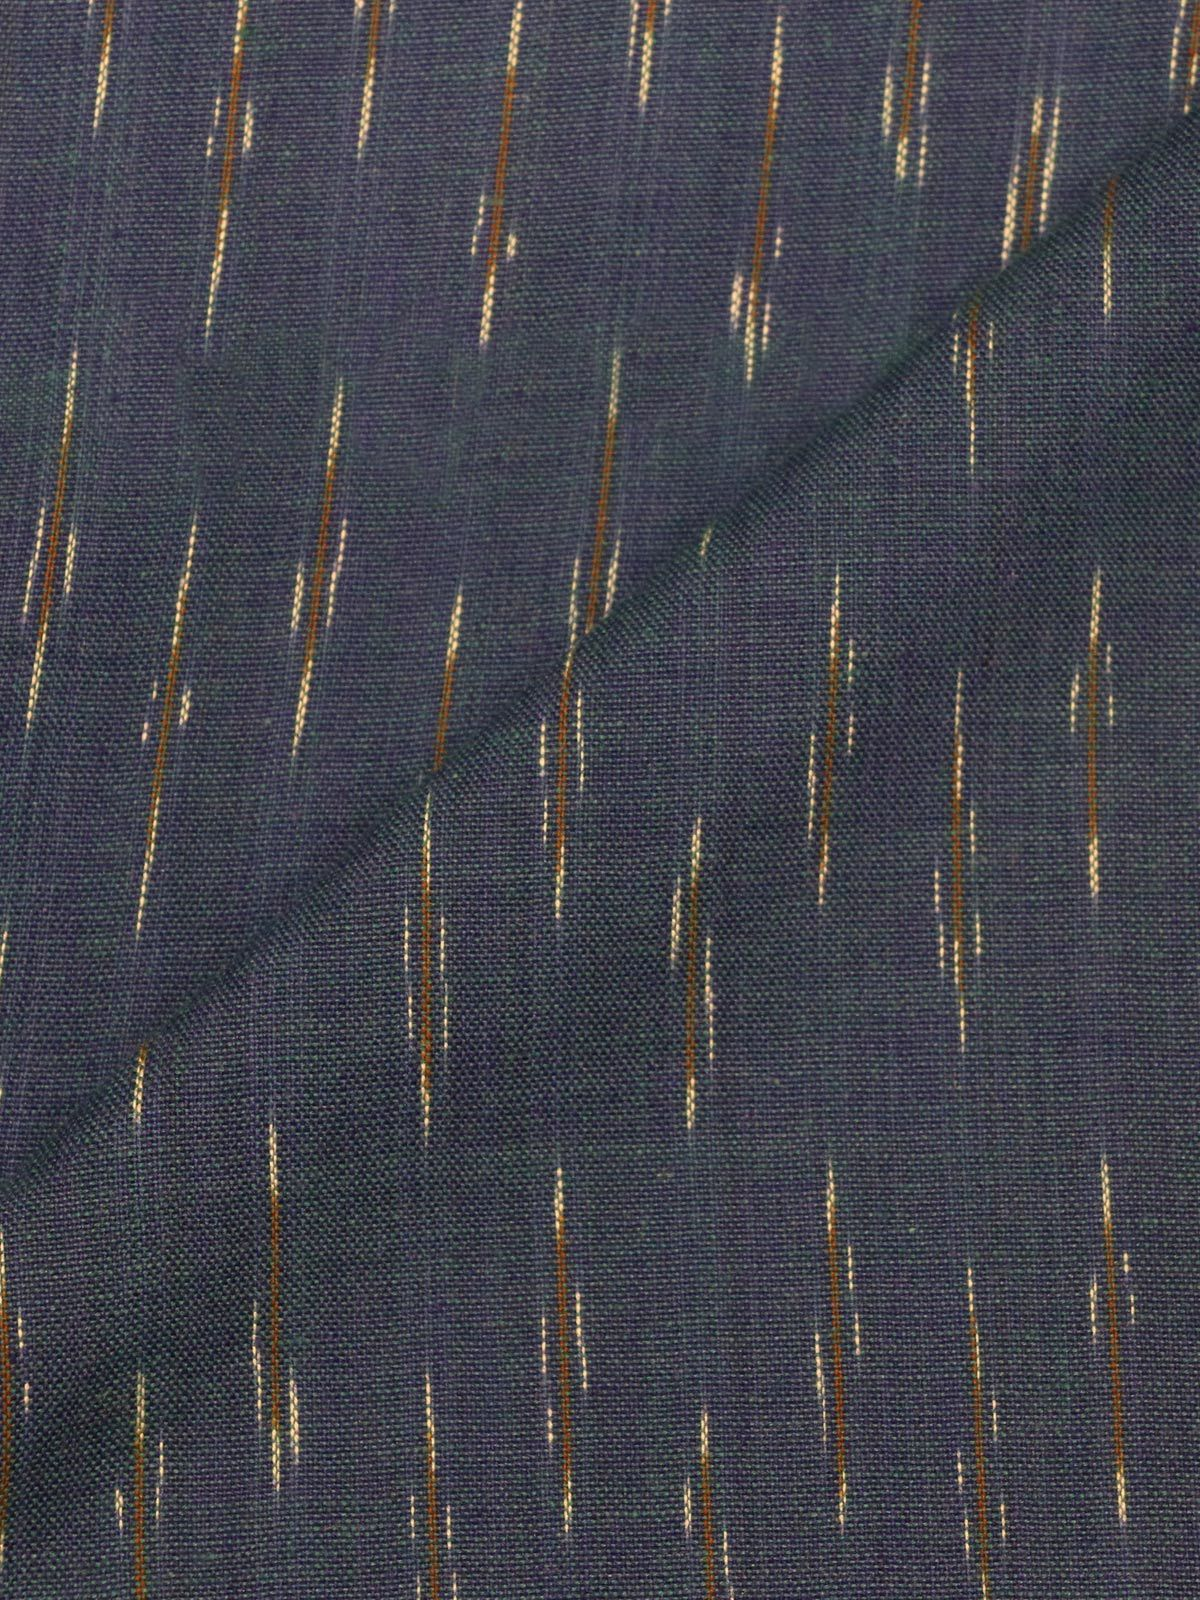 Navy Blue ikat handloom cotton fabric